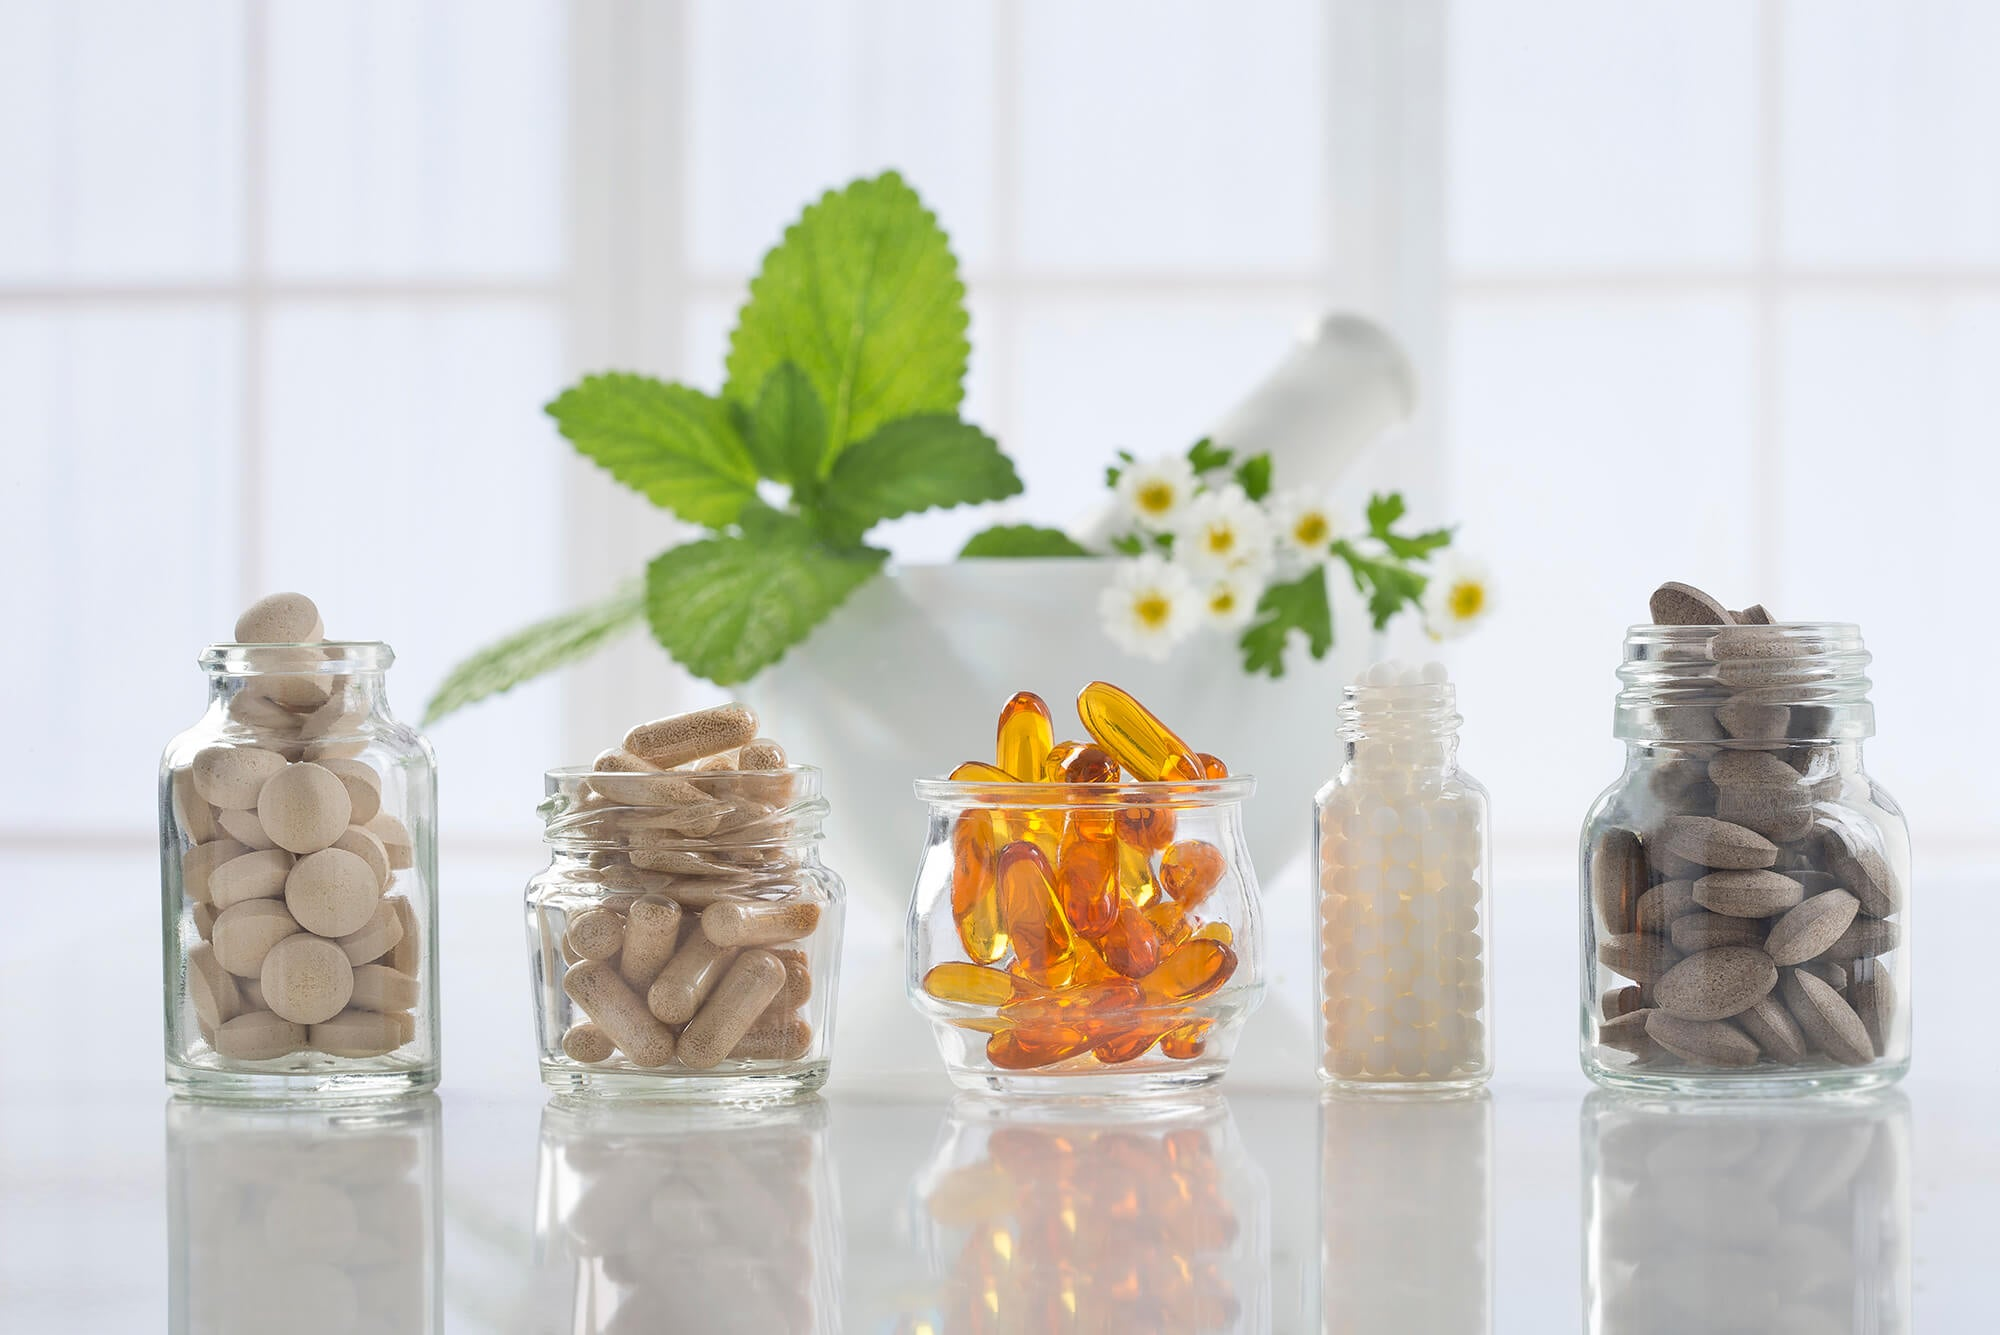 Different forms of supplements